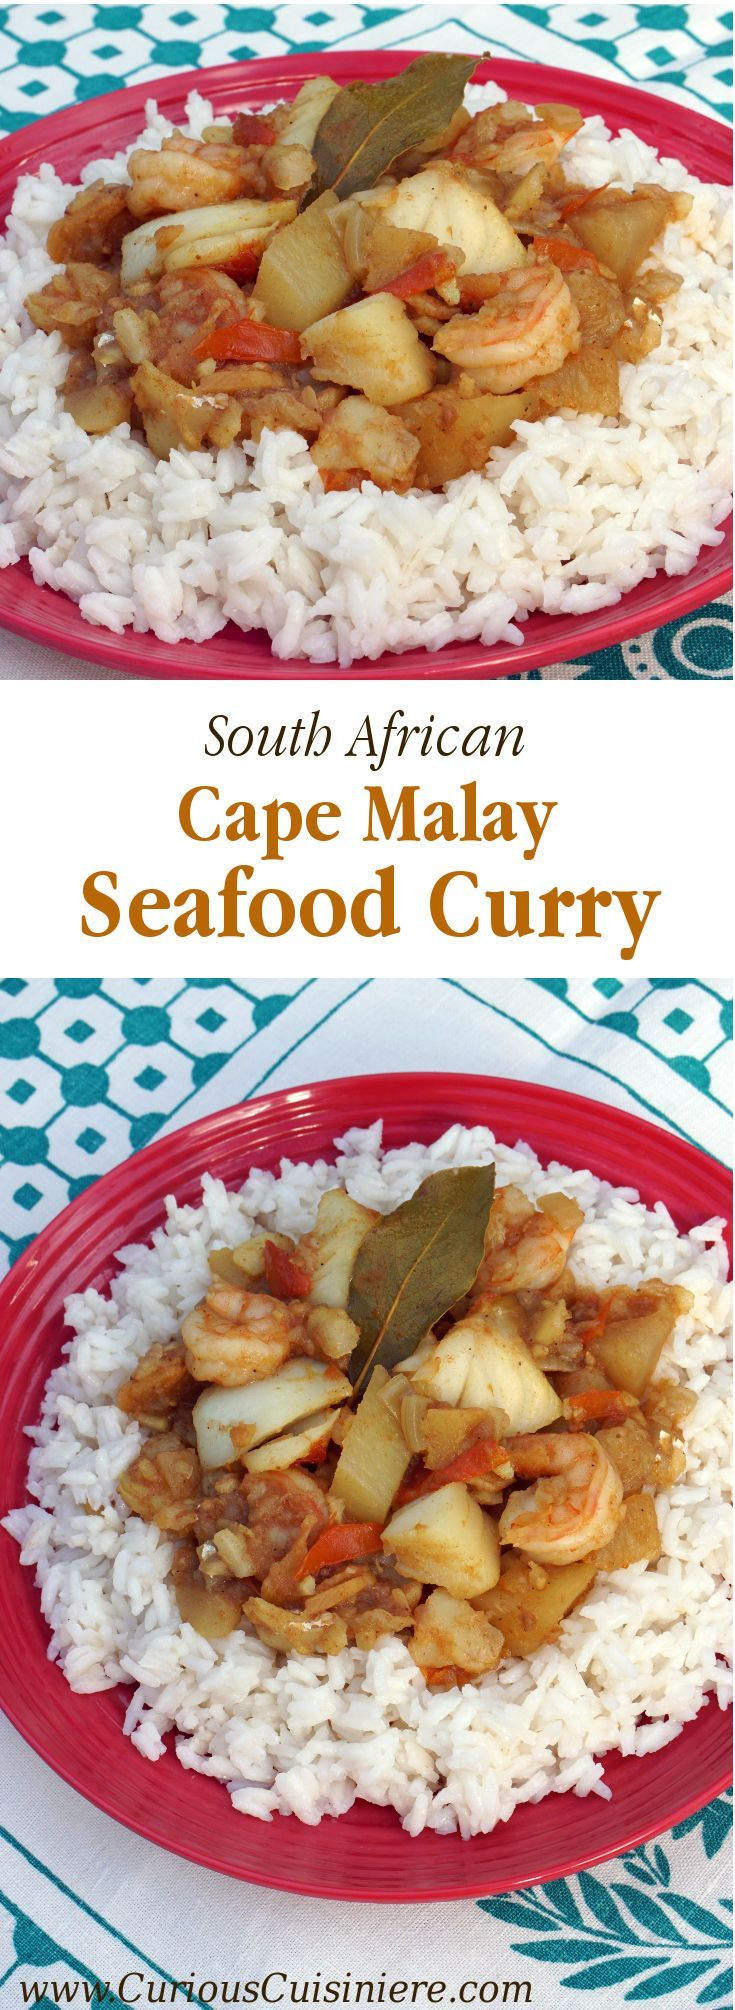 This Seafood Curry is bursting with robust Cape Malay flavors that will transport you to South Africa with every bite.   www.CuriousCuisiniere.com